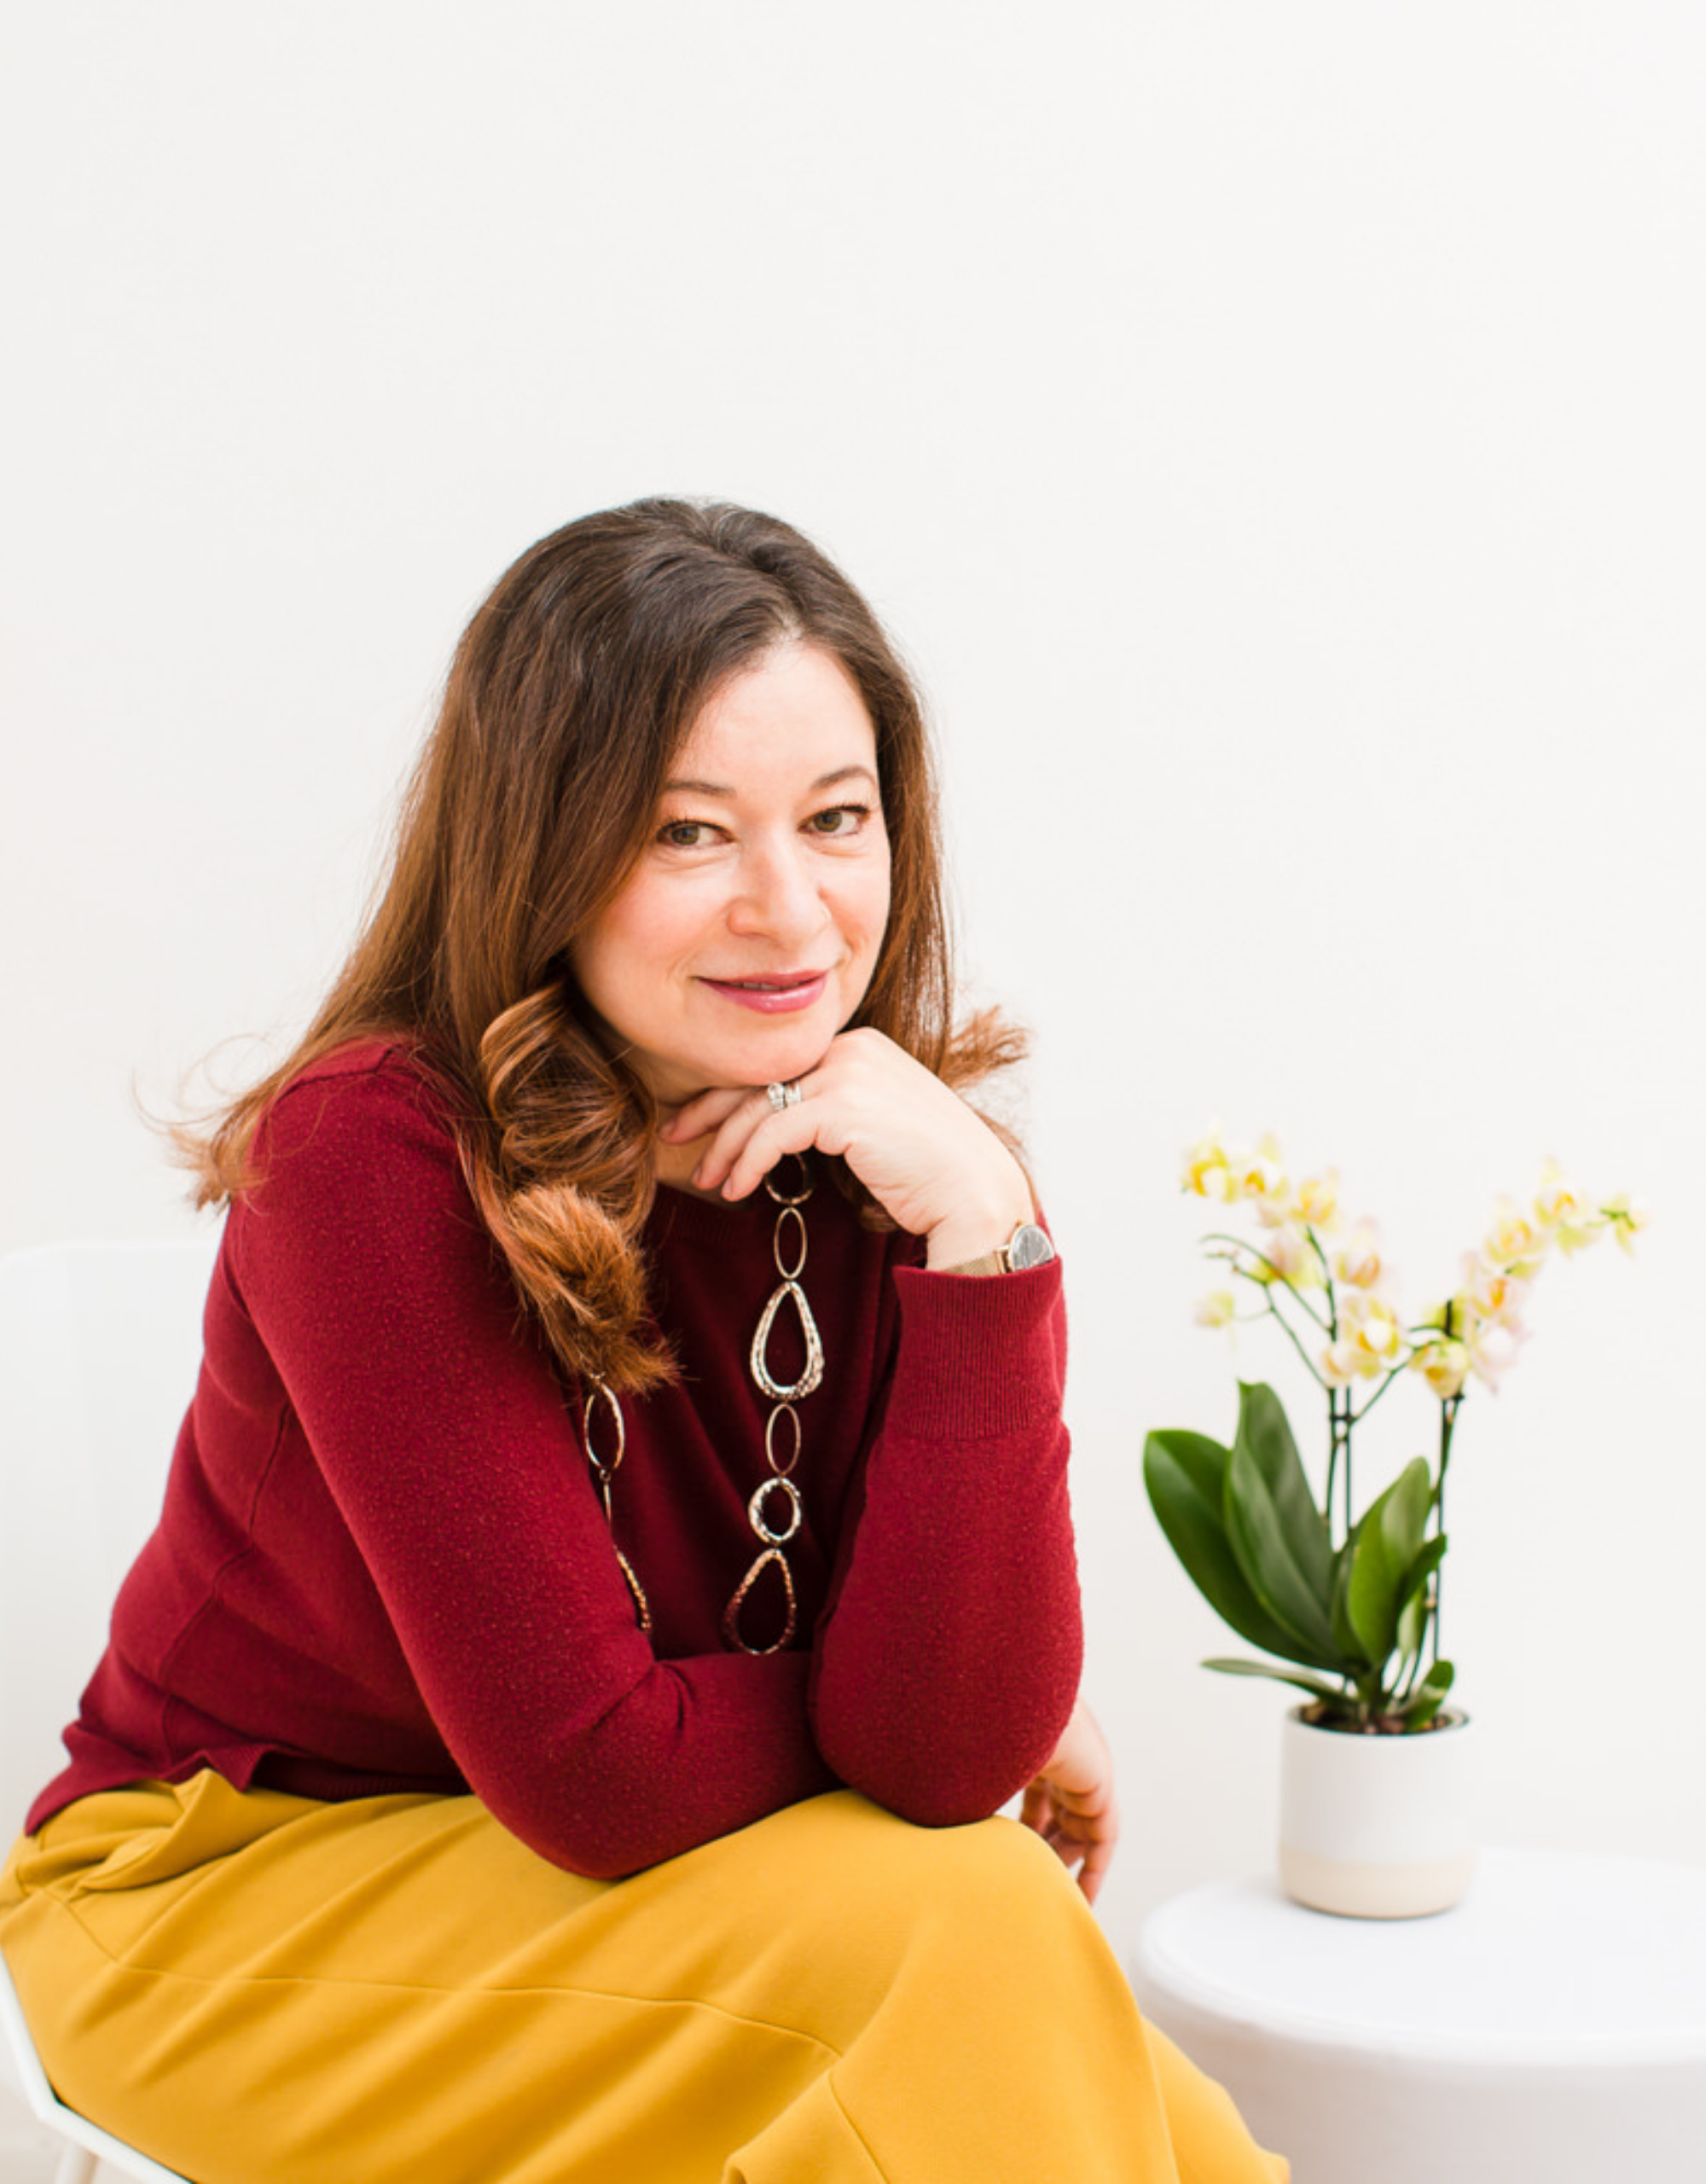 Vicki Marinker, career coach, recruitment consultant and podcaster